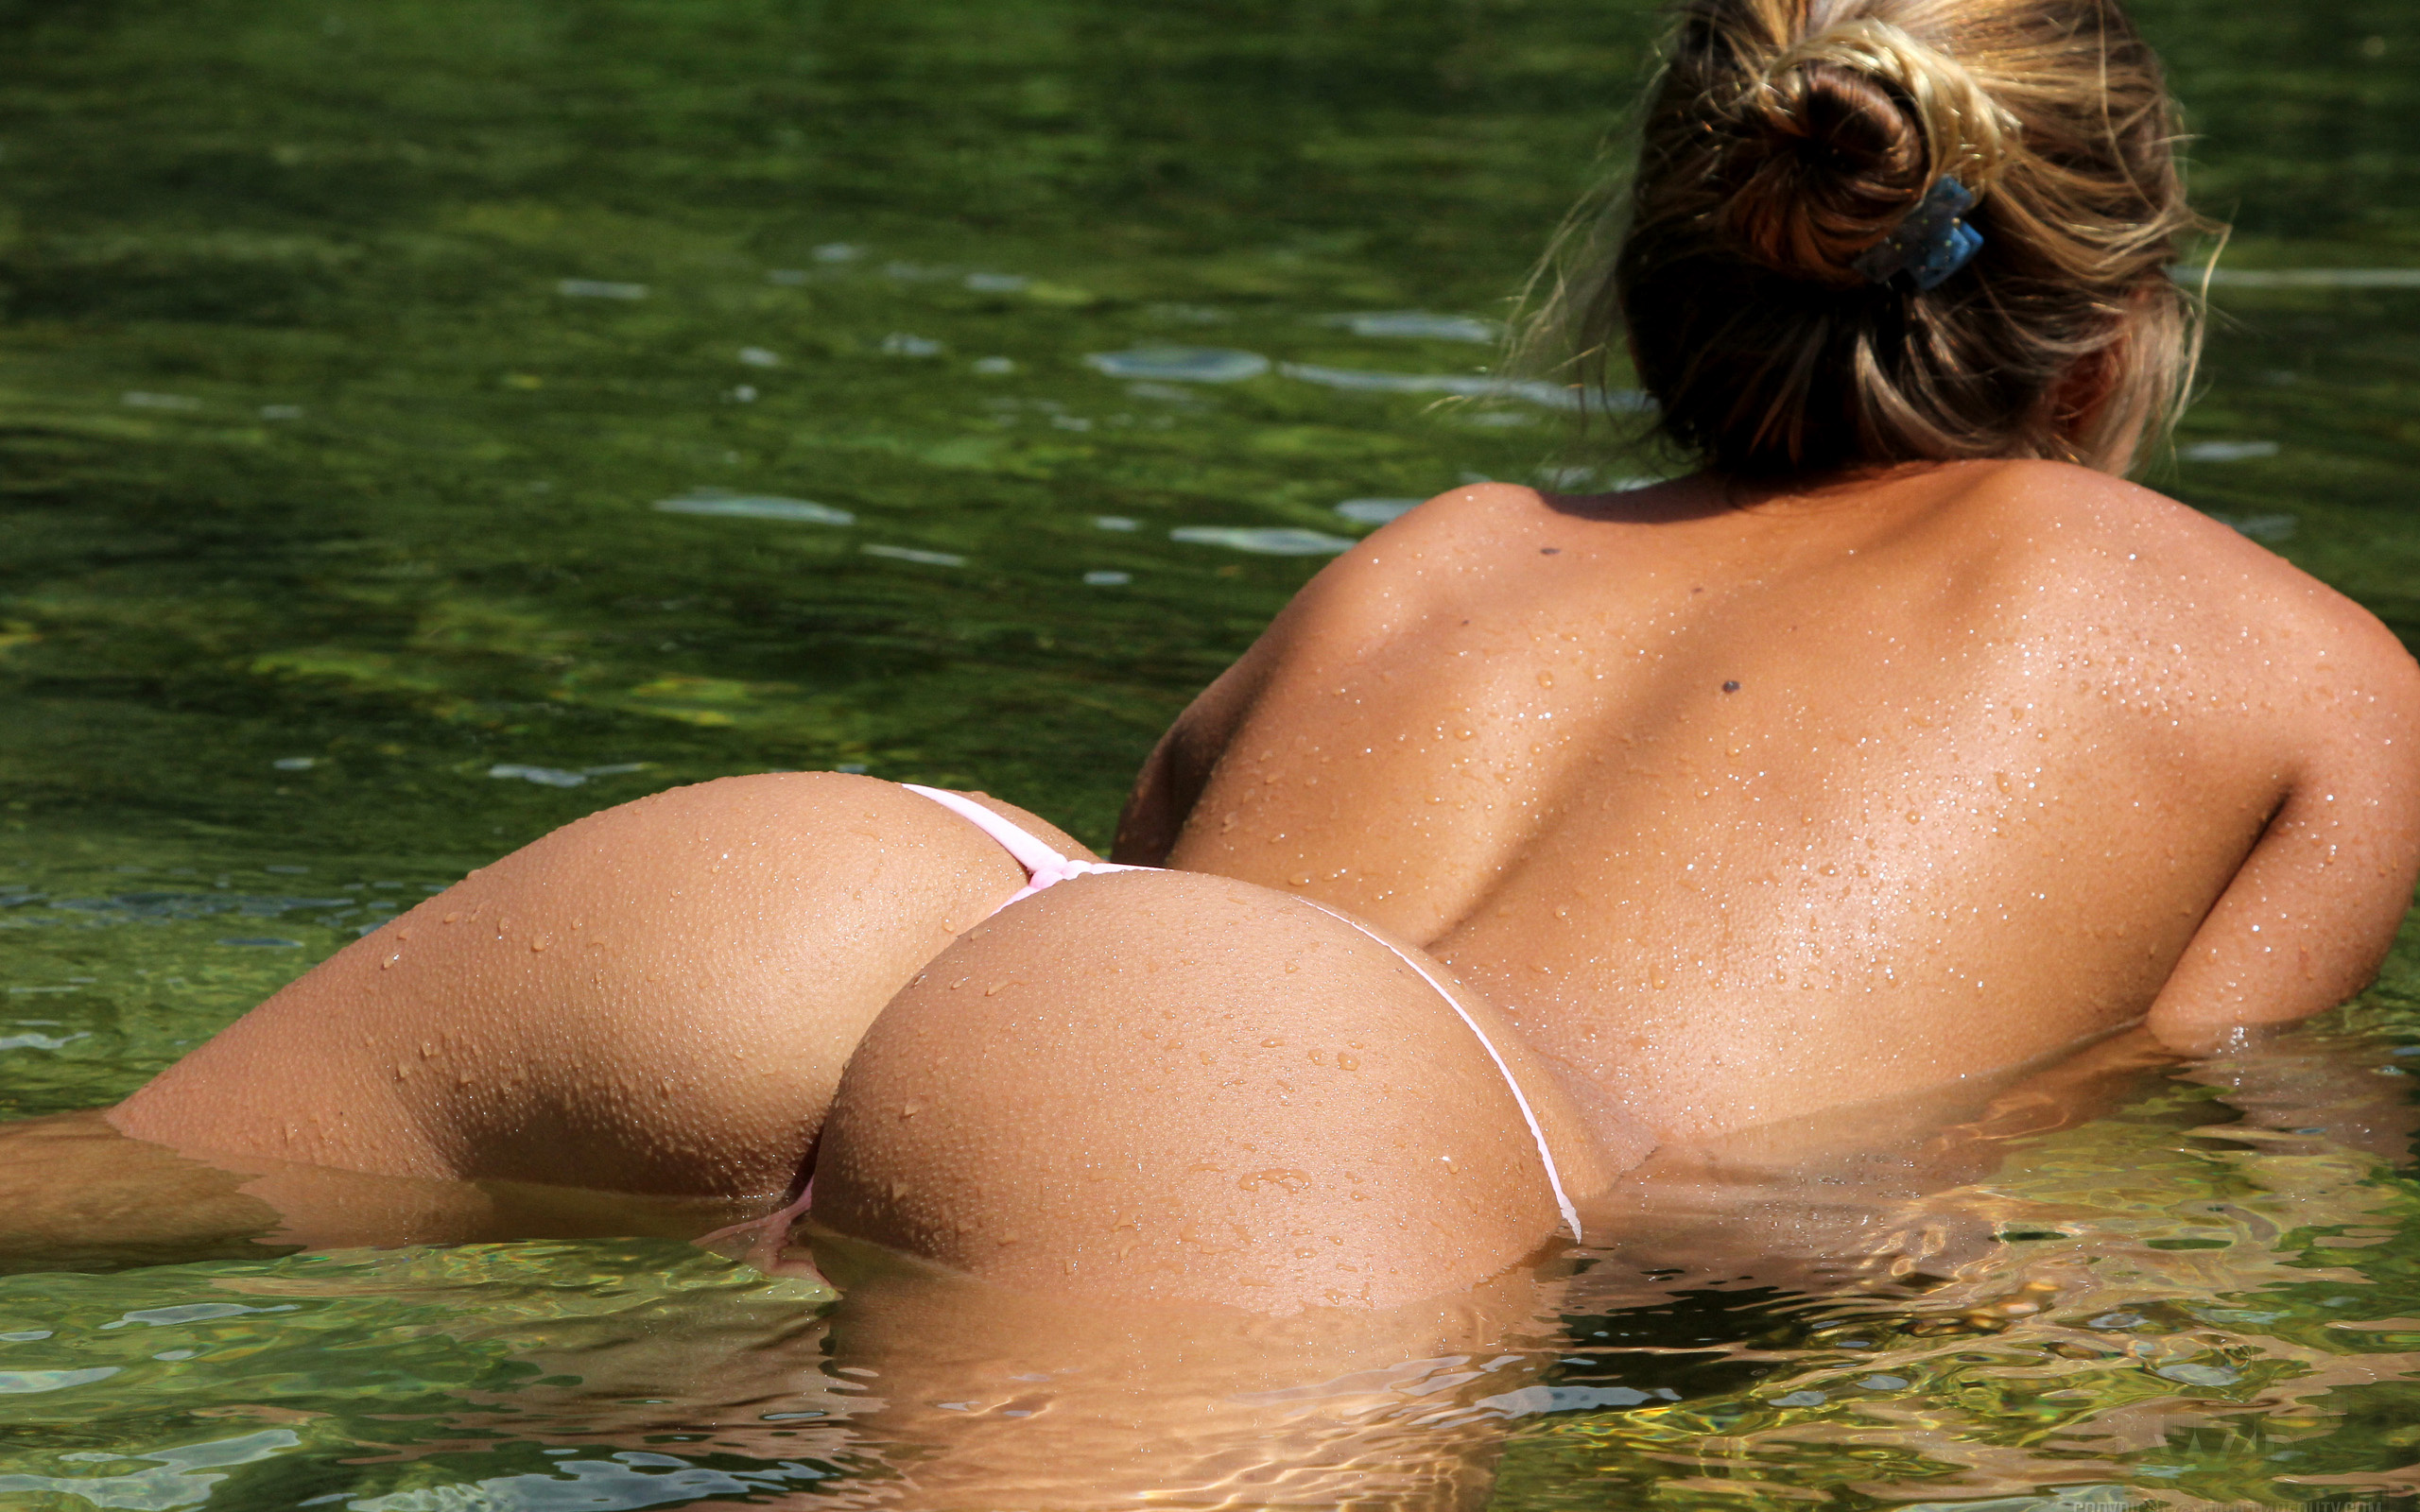 Remarkable, the perfect asses in thongs agree, rather